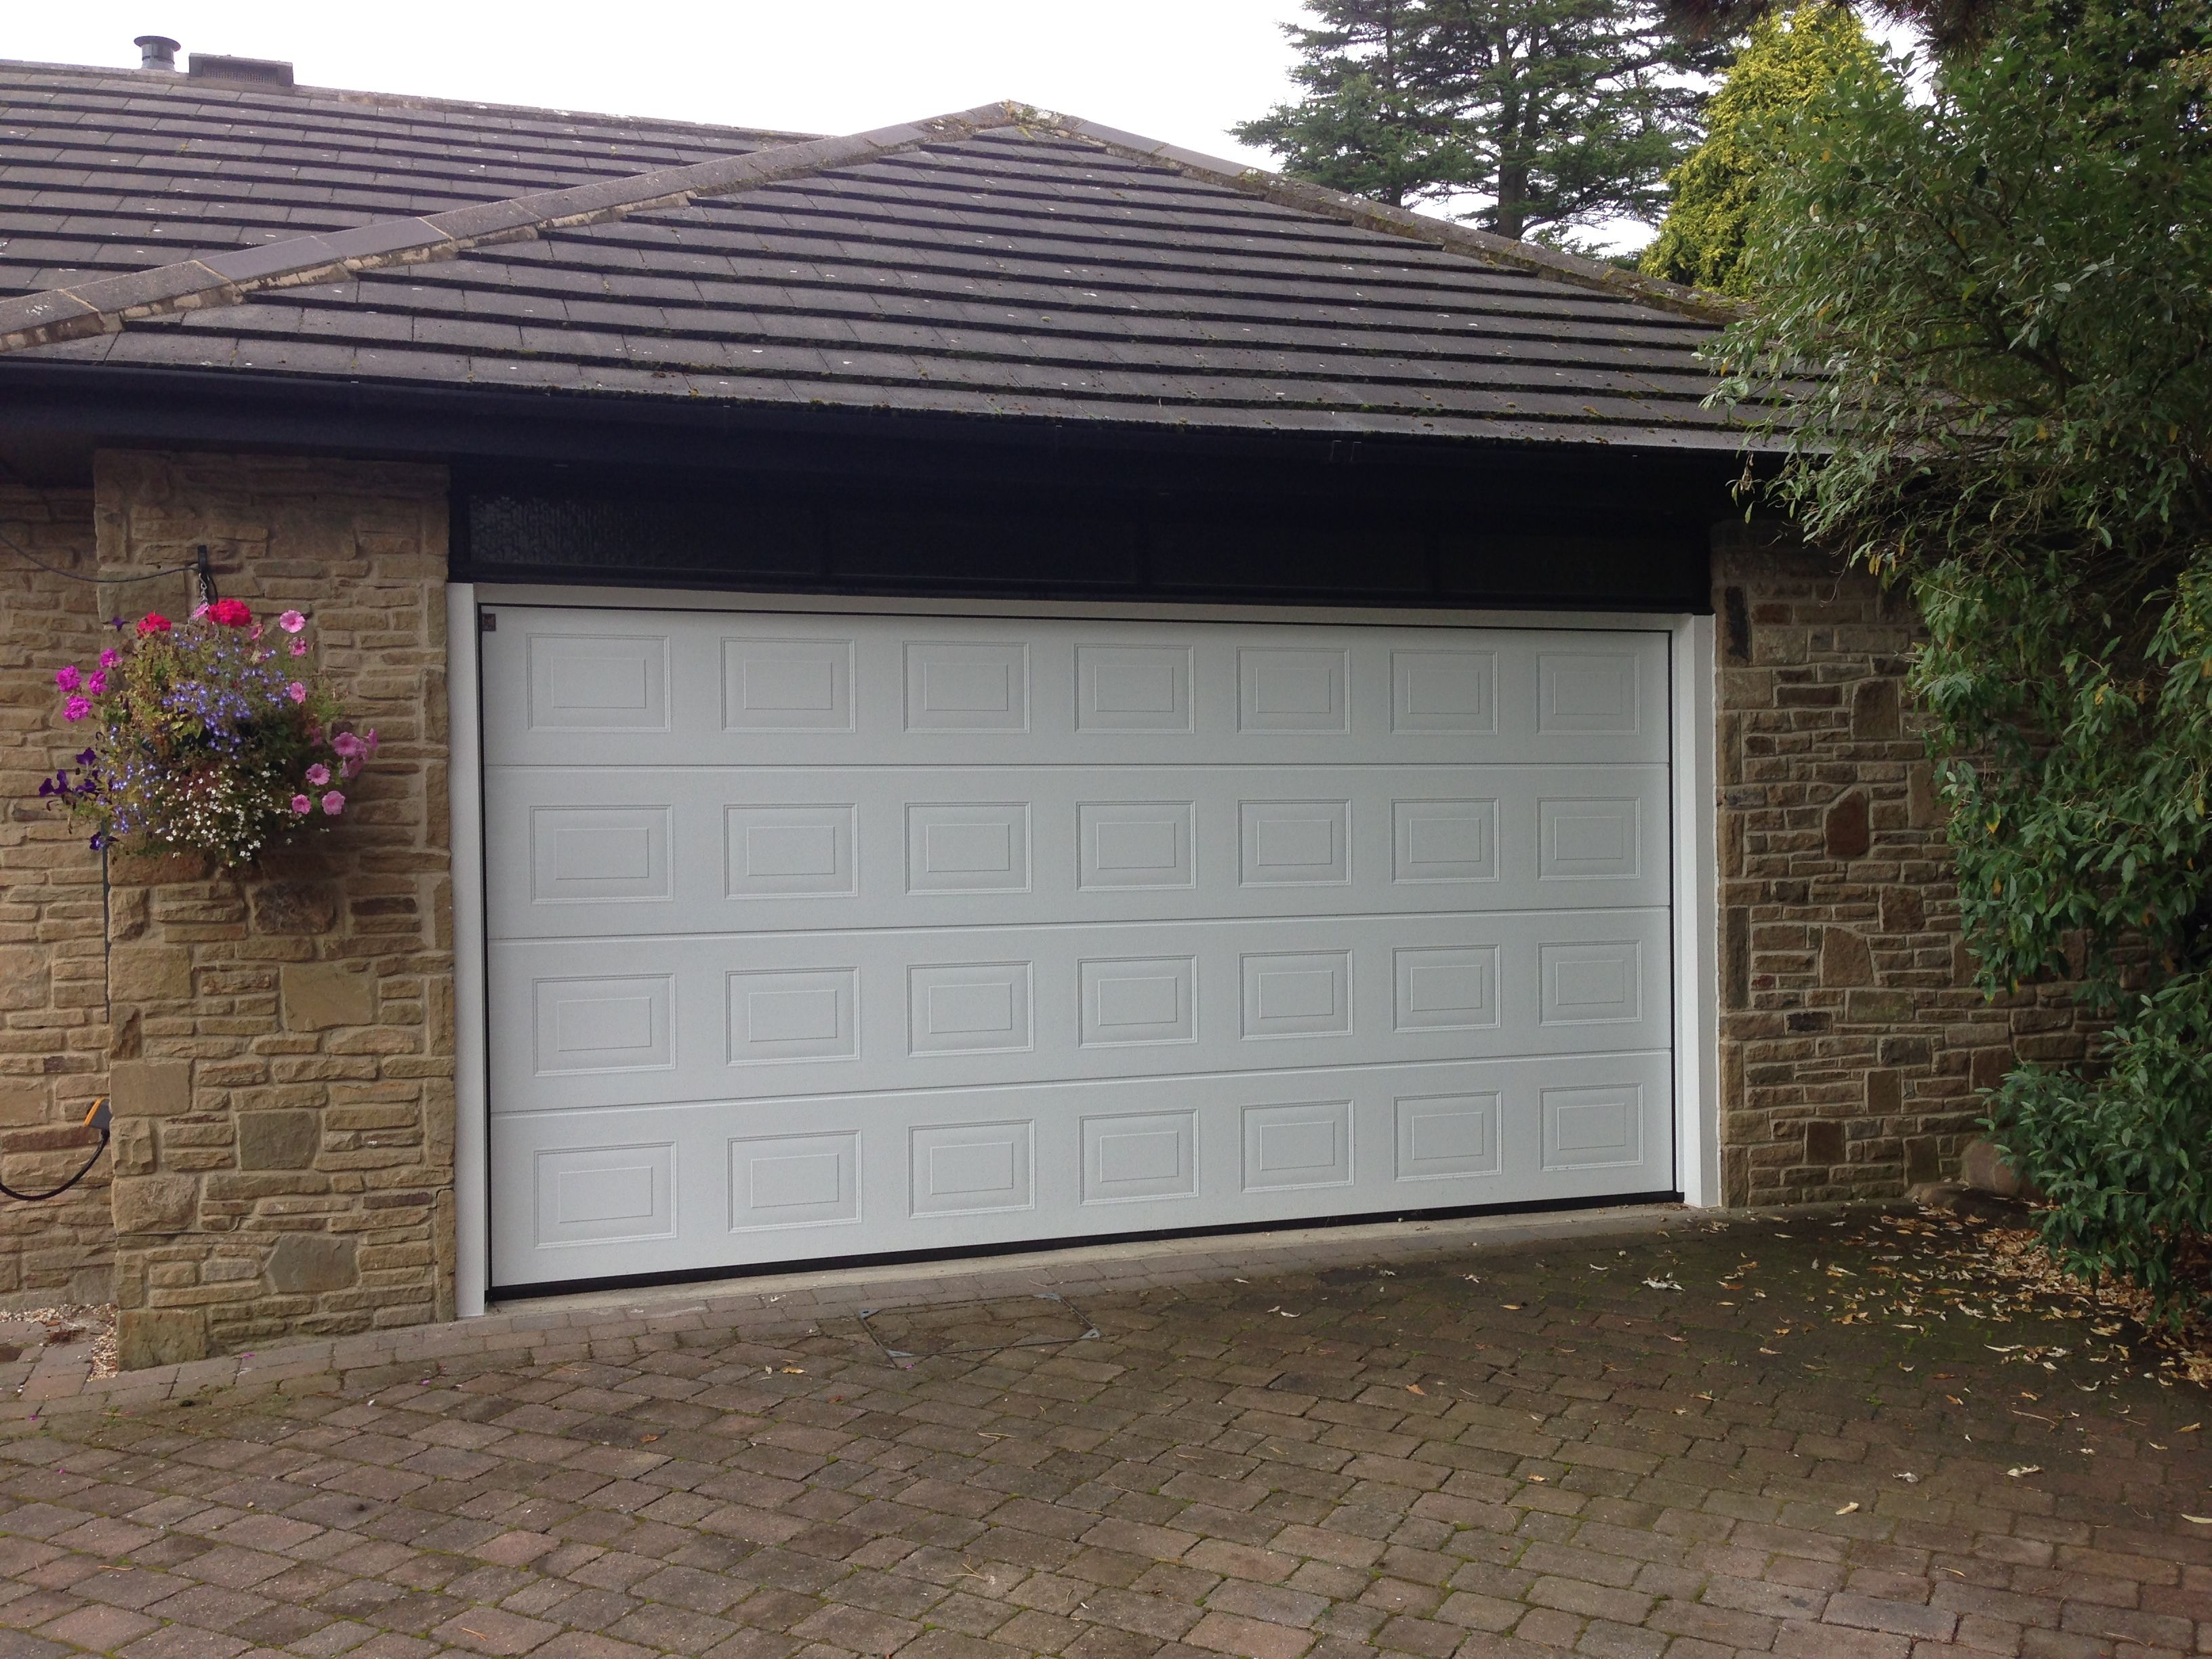 Seceuroglide insulated sectional garage door georgian cassette -  Hormann Lpu40 Insulated Sectional Garage Door In White With Softwood Timber Treated Frame